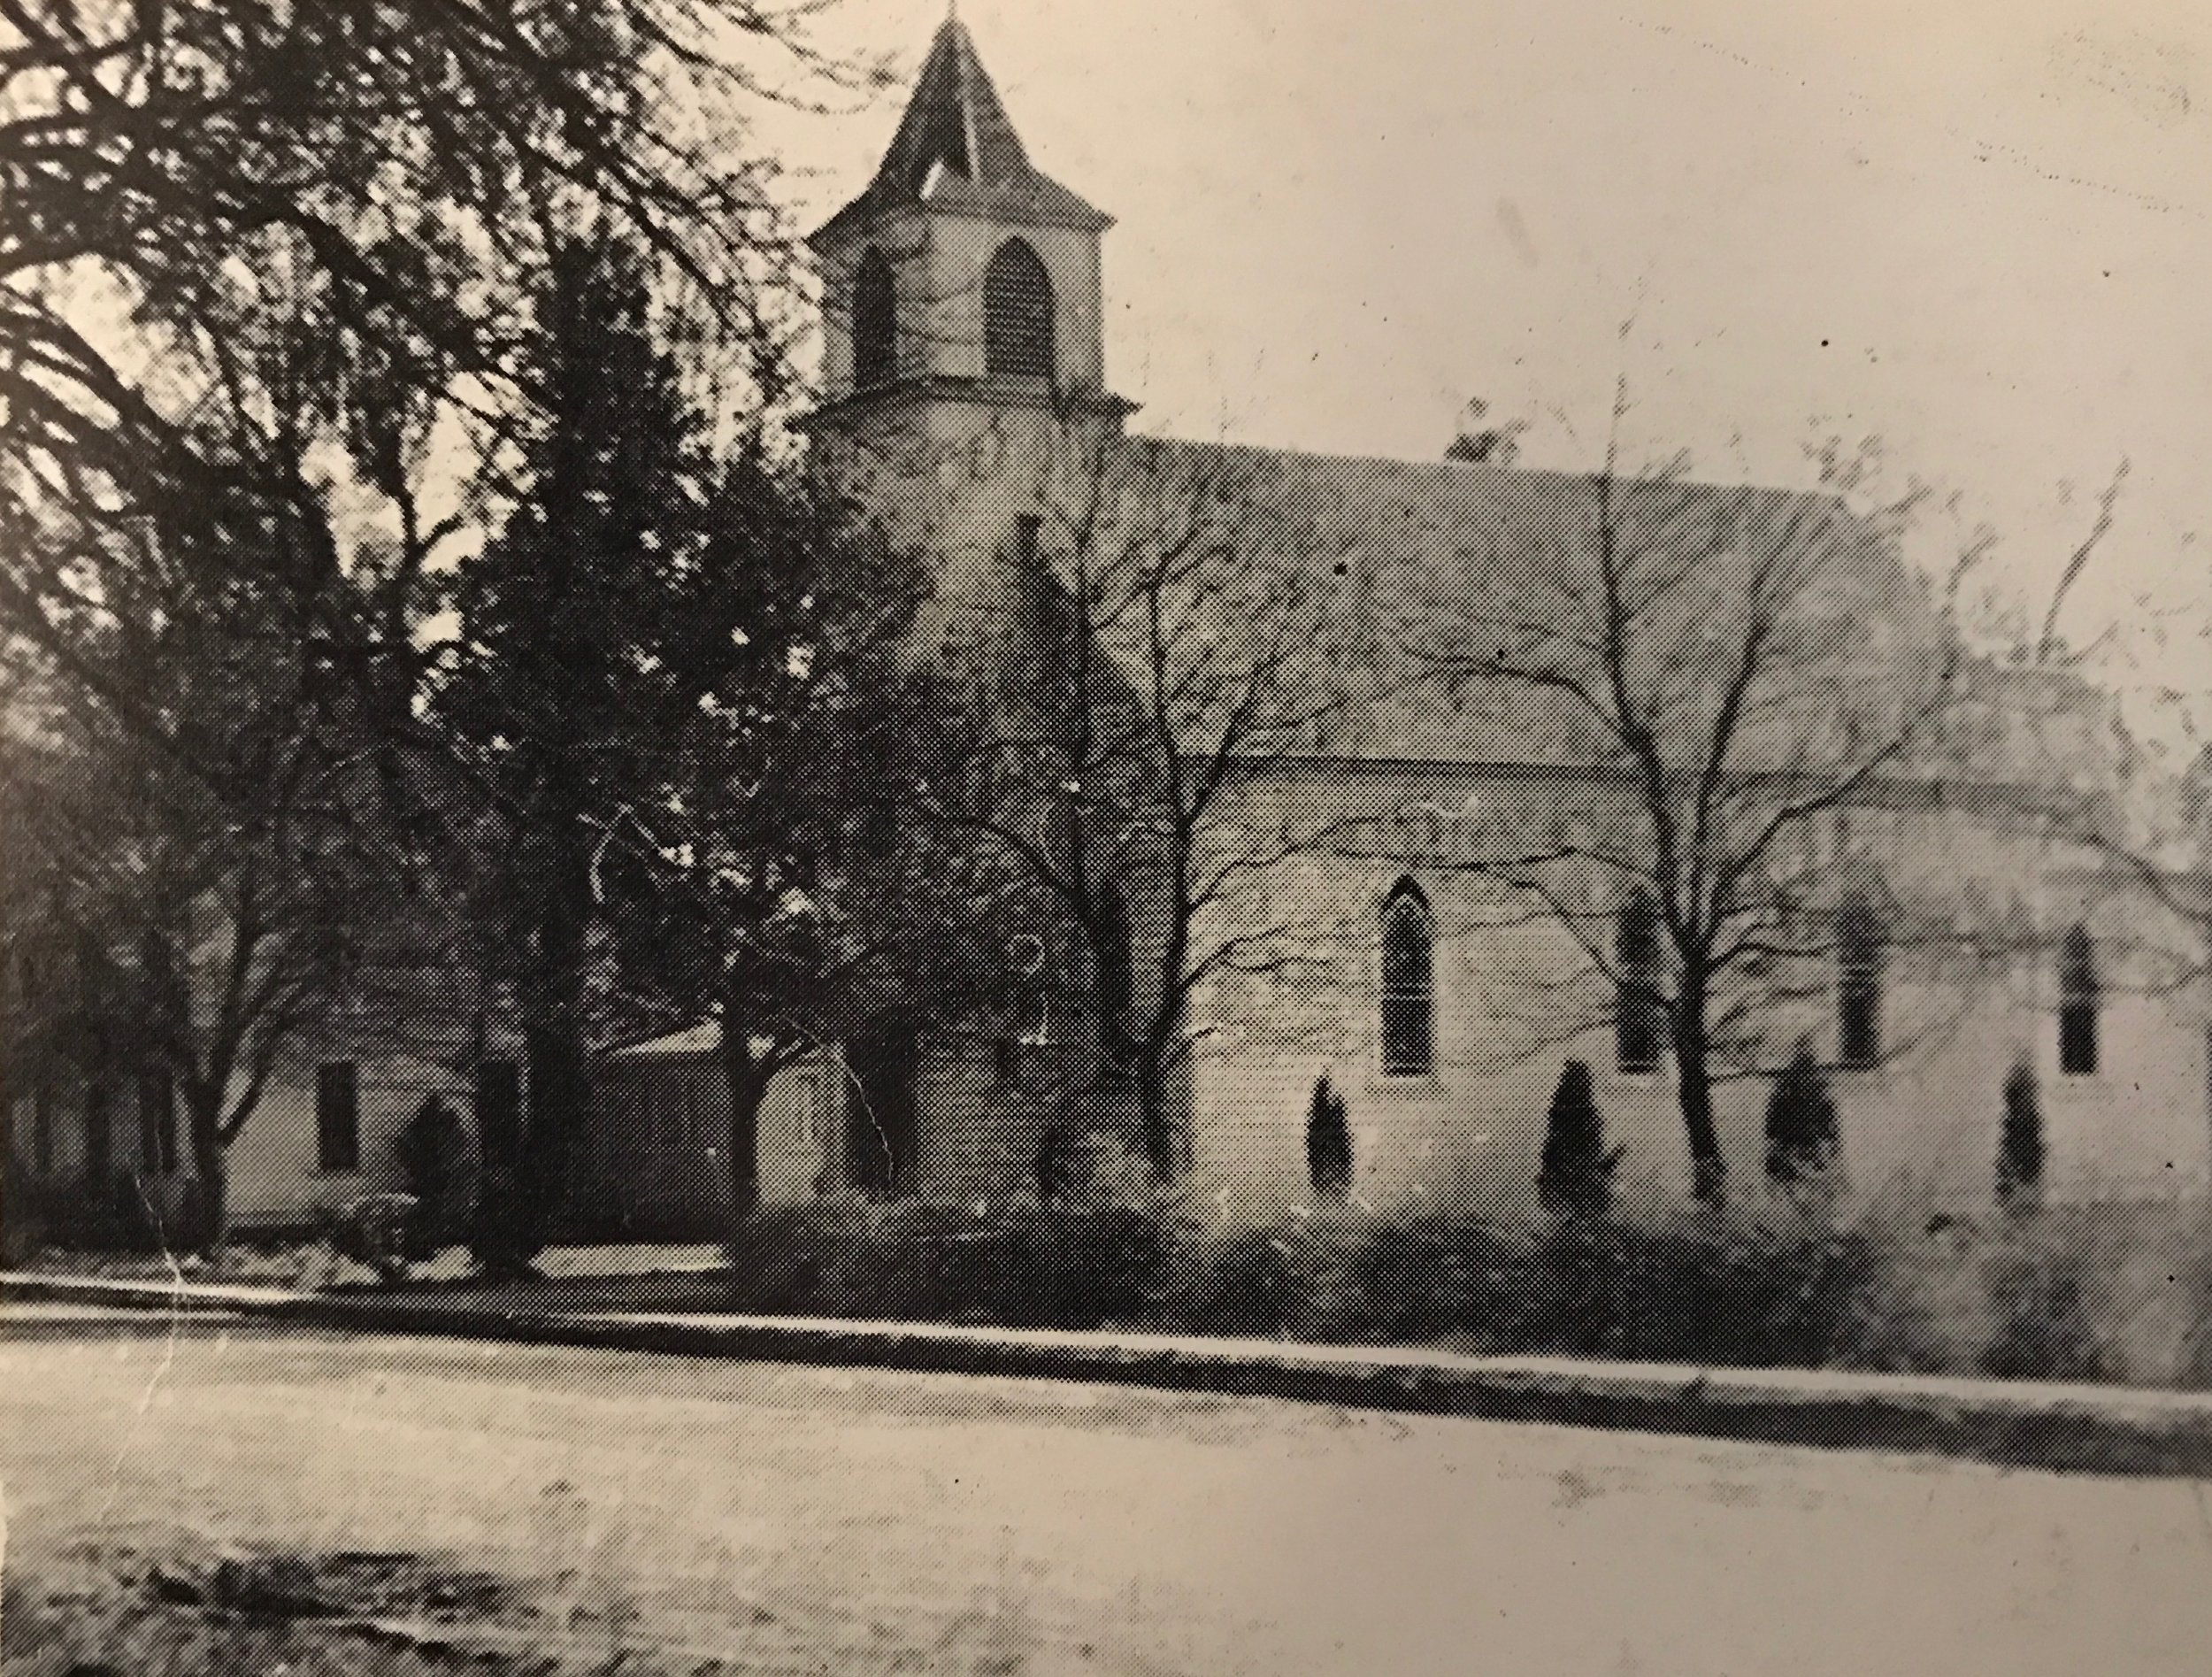 1896 Church with added bell tower. Convent on the left.